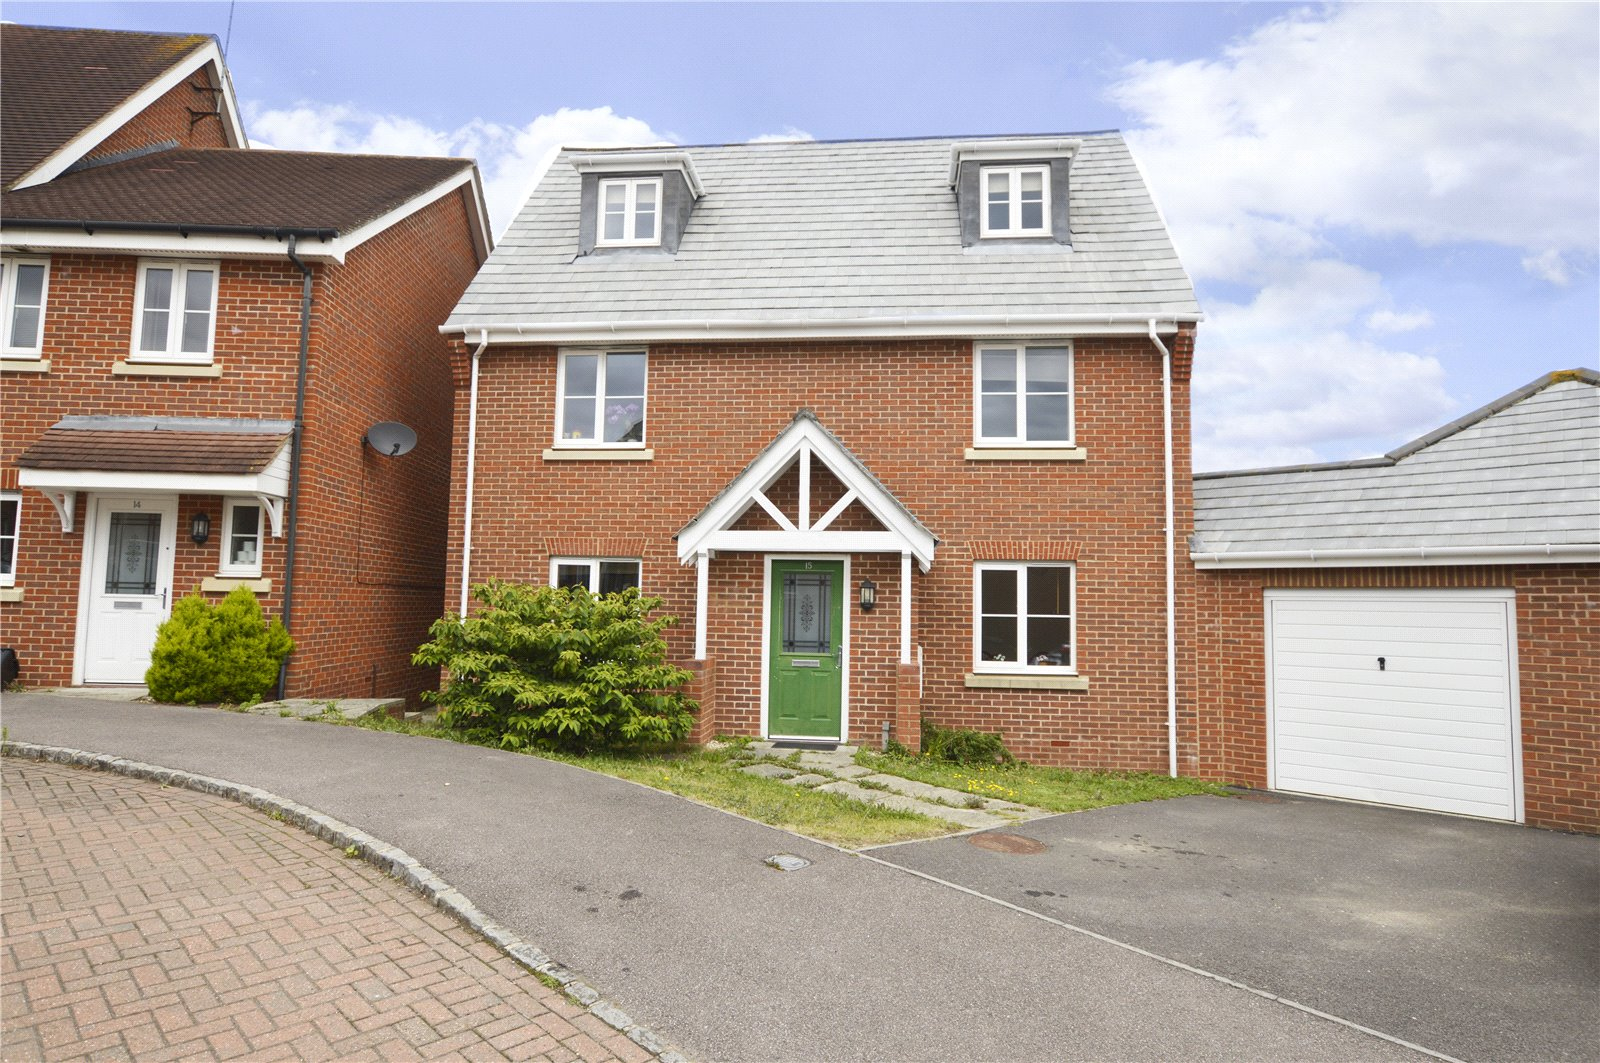 5 Bedrooms Detached House for sale in Ducketts Mead, Shinfield, Reading, Berkshire, RG2